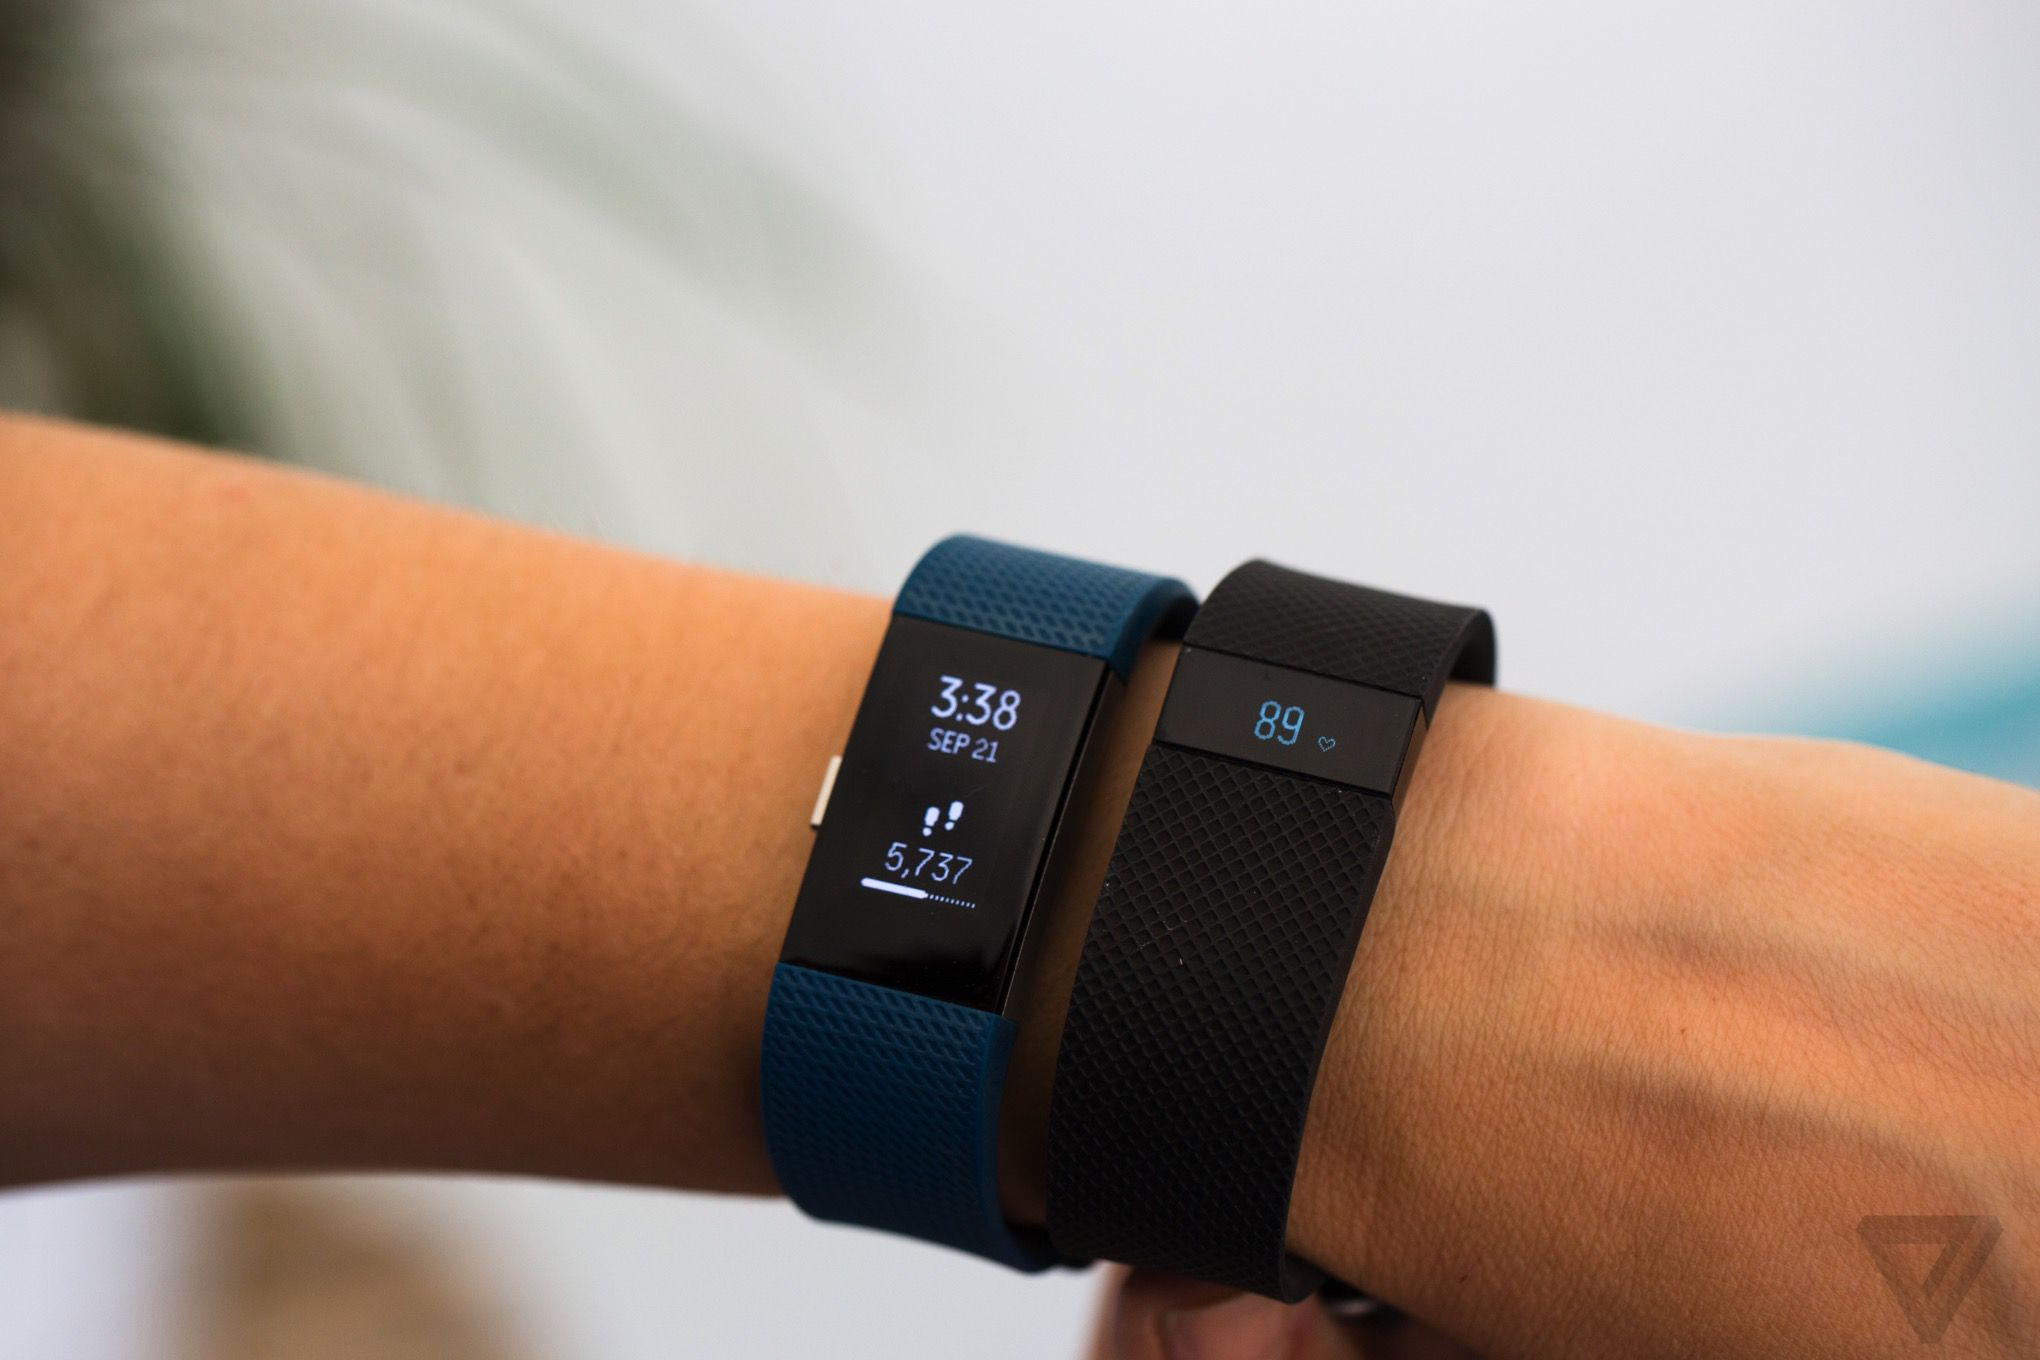 Fitbit Expected to Announce Layoffs in Fourth Quarter Results